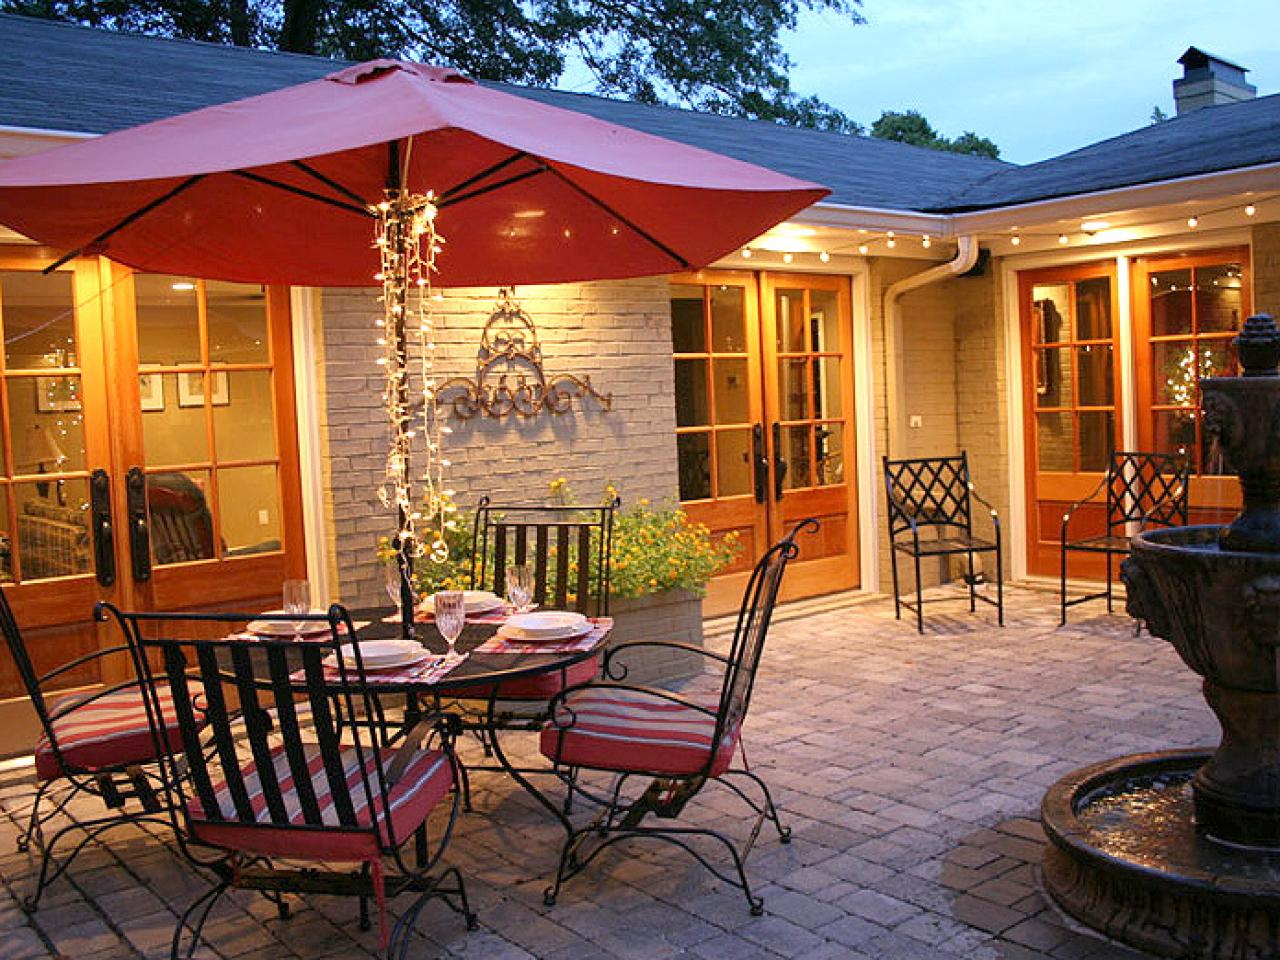 Cozy, Intimate Courtyards | Outdoor Spaces - Patio Ideas ... on Courtyard Patio Ideas id=91298